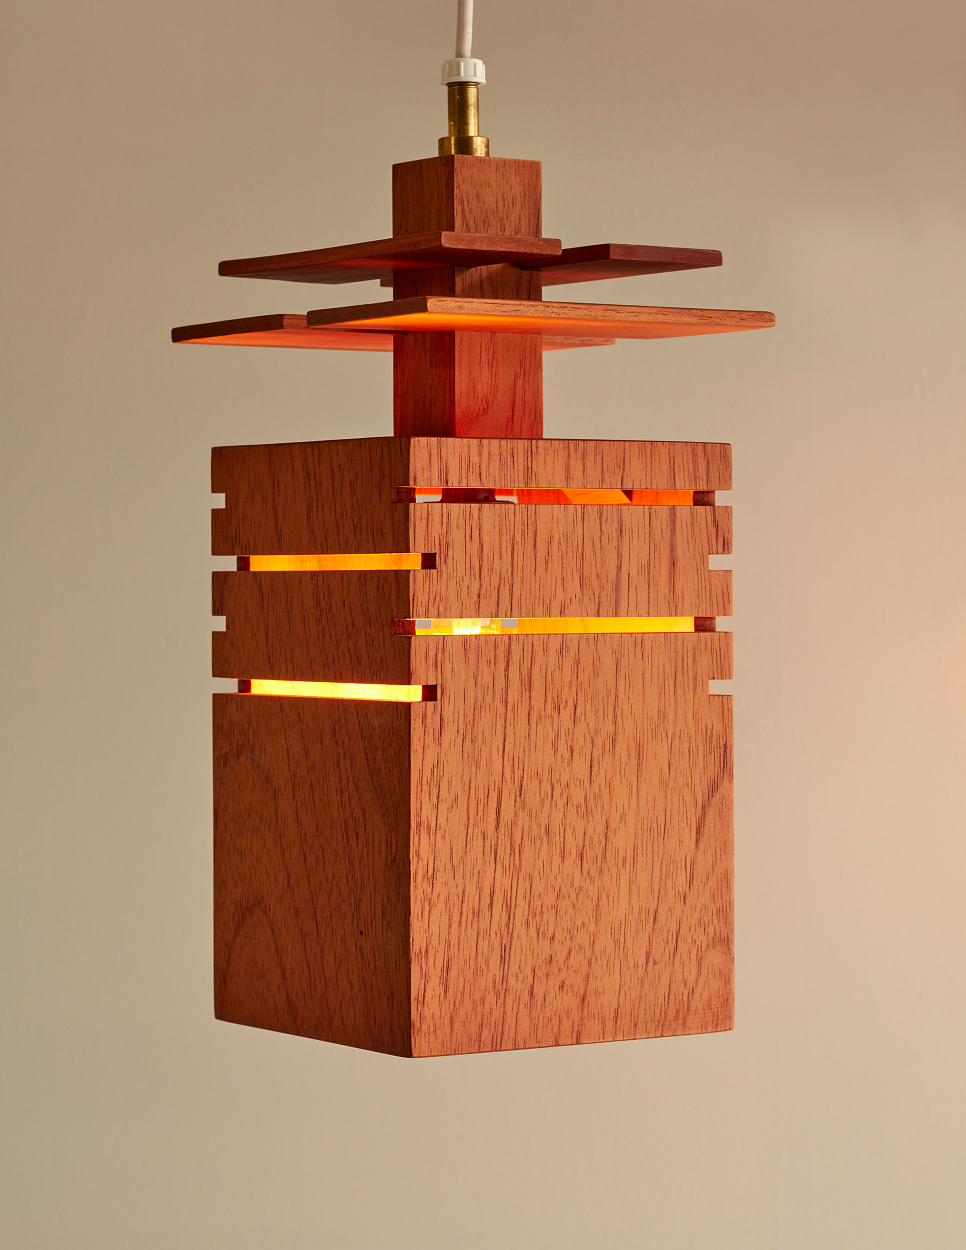 BOLAND+WOODWORKING_CEDAR+PENDANT_017+FINAL+Credit+Jason+Varney+resize.png